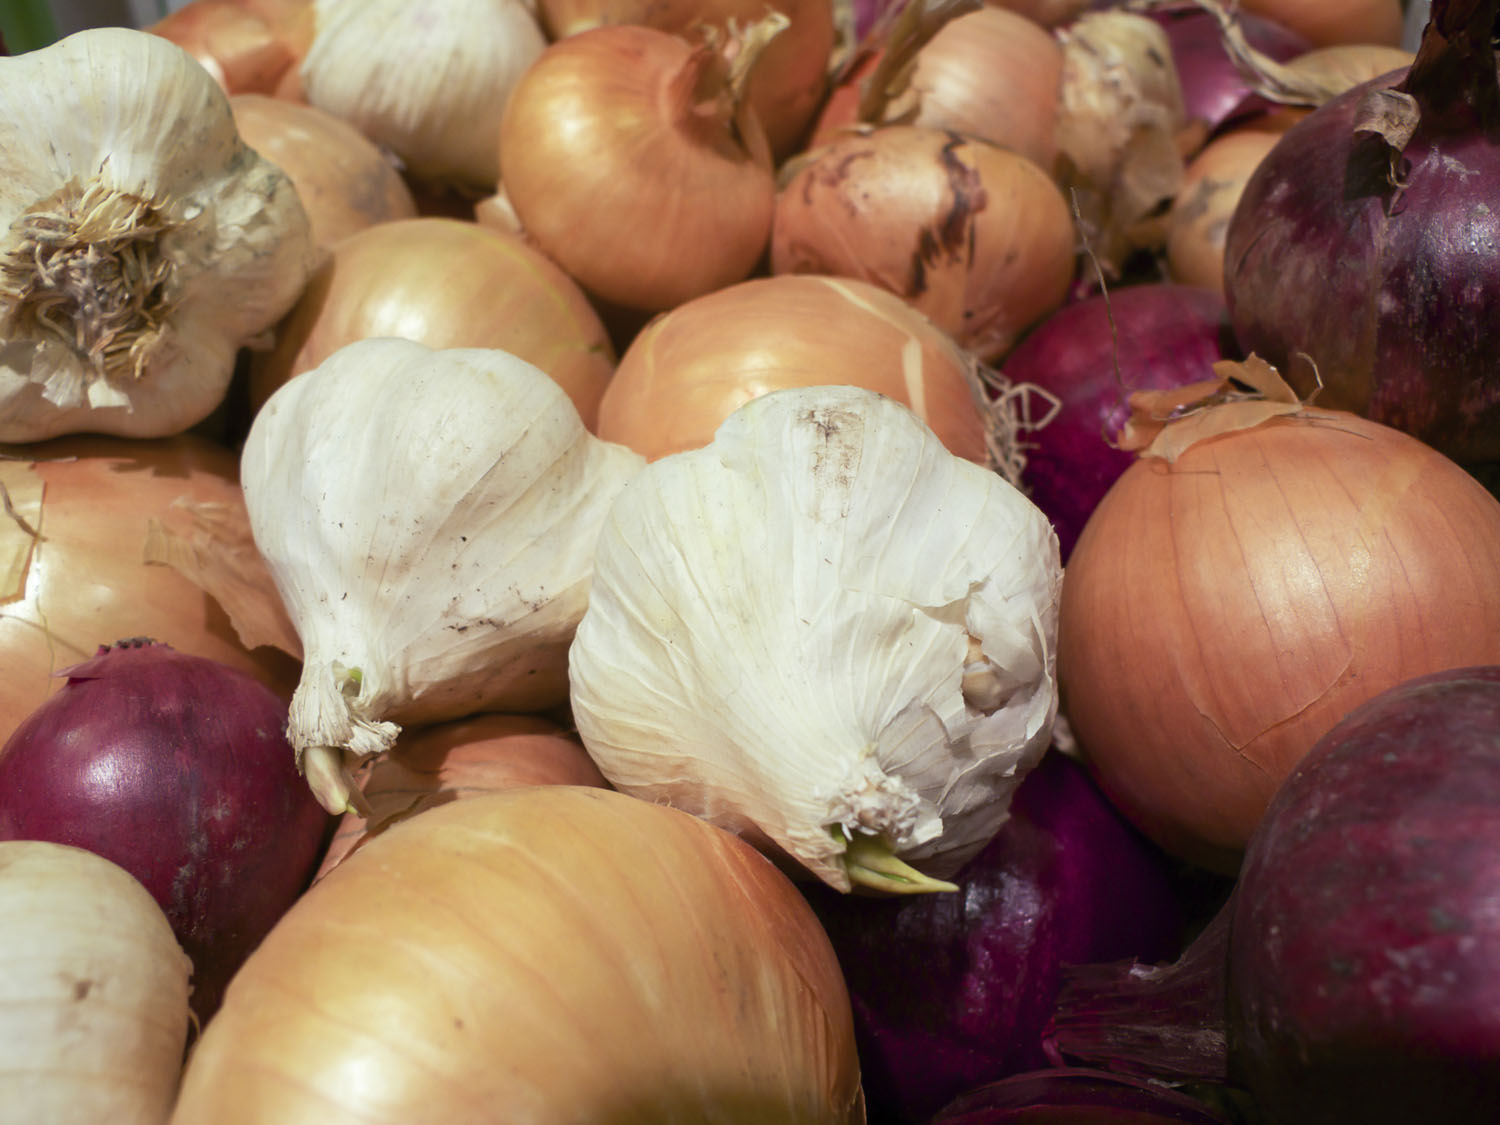 Pair garlic with onions to maximize the release of organosulfer compounds that benefit cardiovascular health.